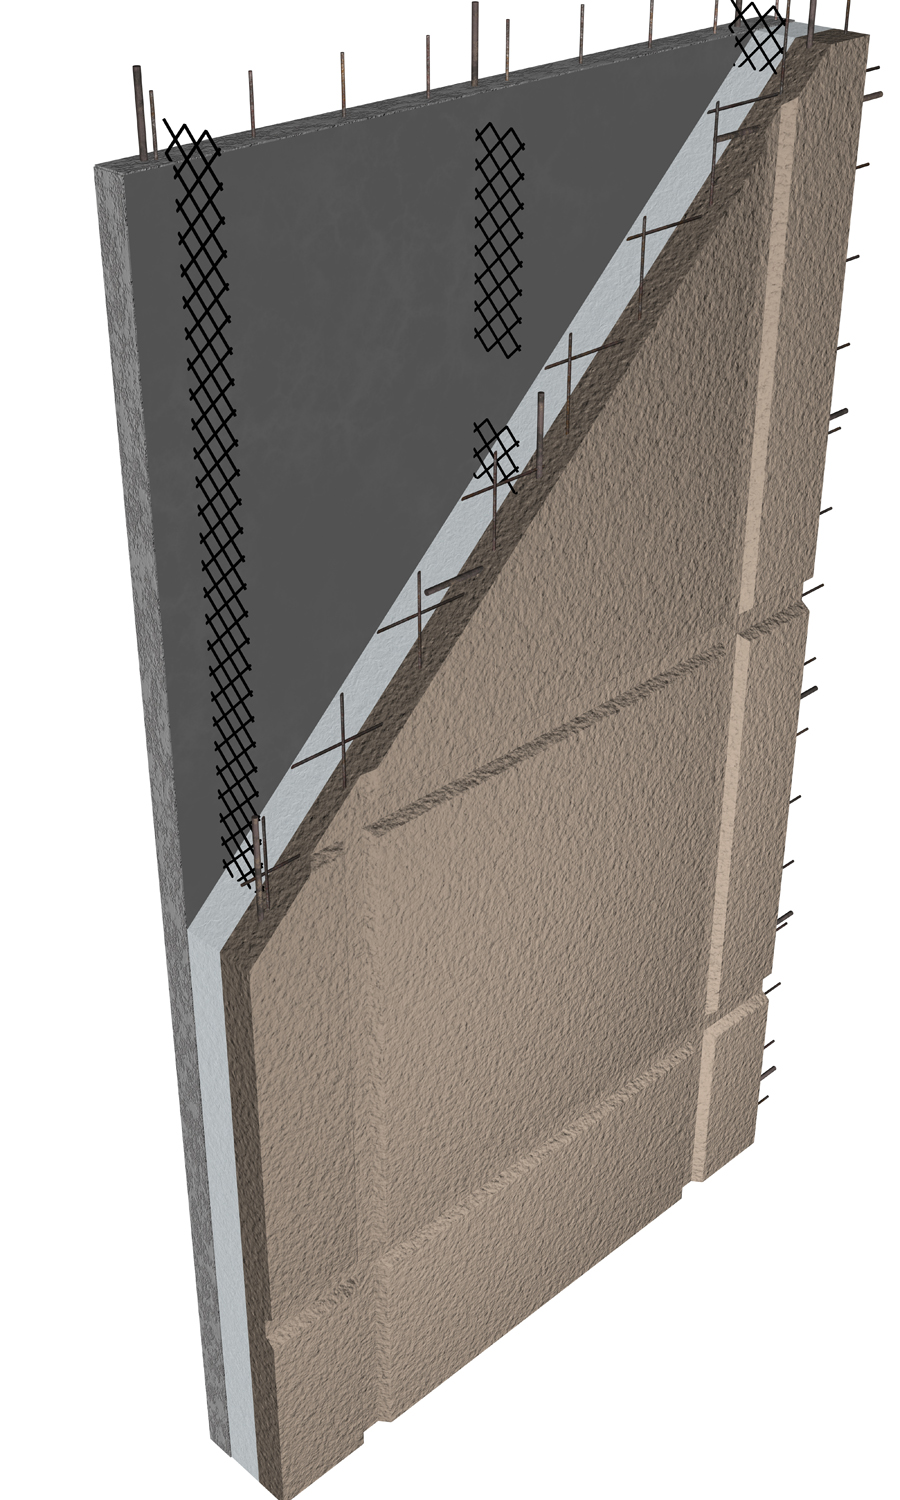 CarbonCast Insulated Wall Panels | Oldcastle Infrastructure